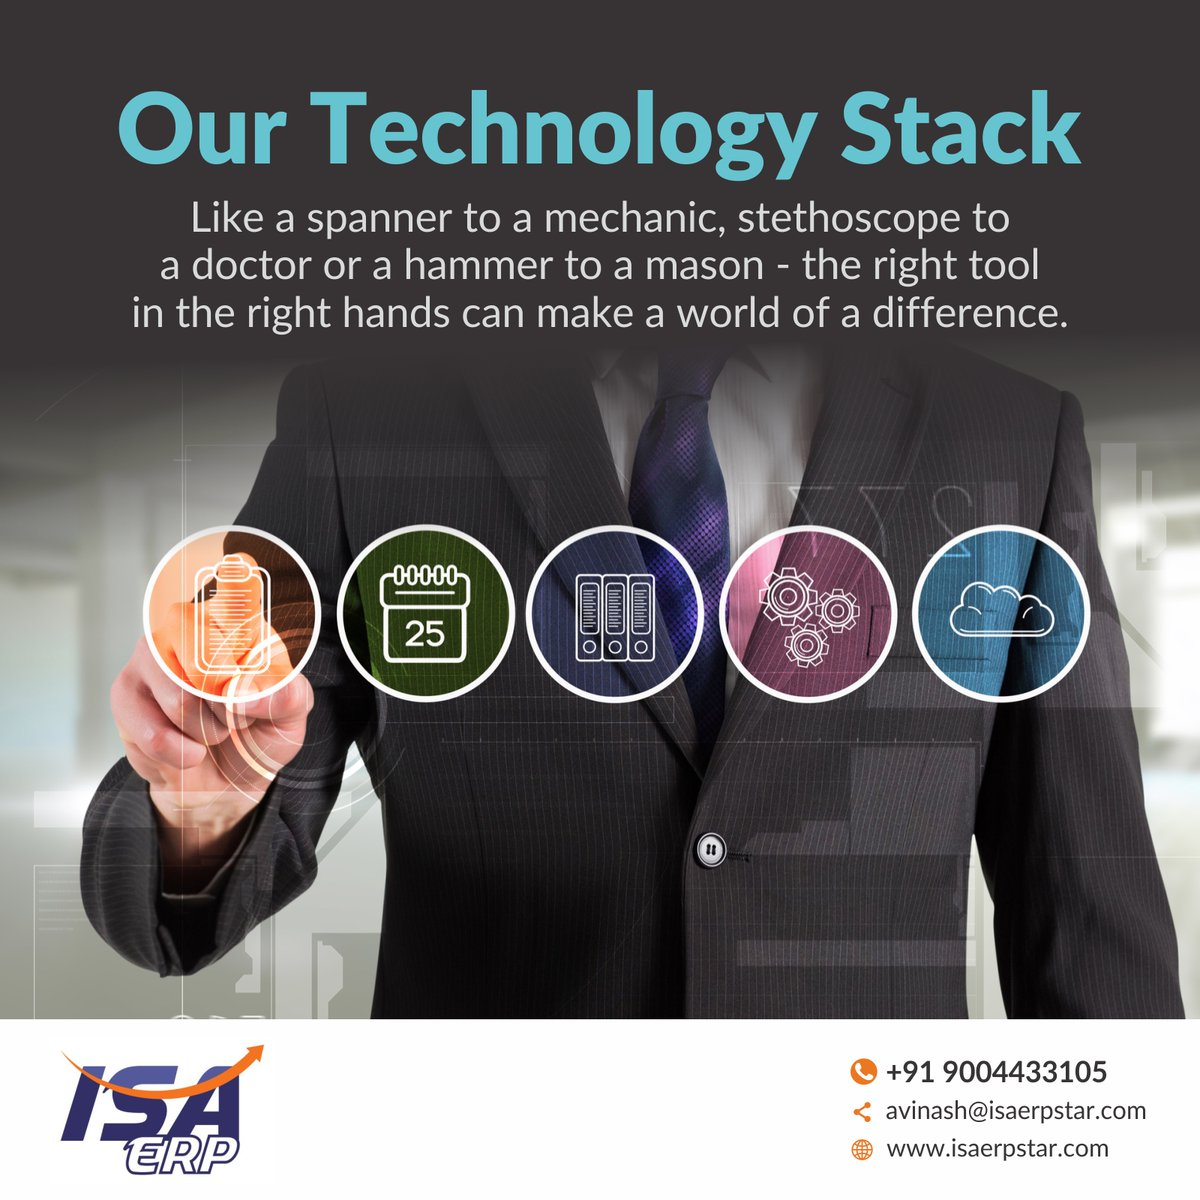 At ISA ERP, we have handpicked digital technologies that will allow us to serve the best value to our clients. Our ERP solution is an all-in-one, affordable ERP solution to manage your entire business from sales and customer relationships to financials and operations.  #Software pic.twitter.com/3cYaEo4JV9